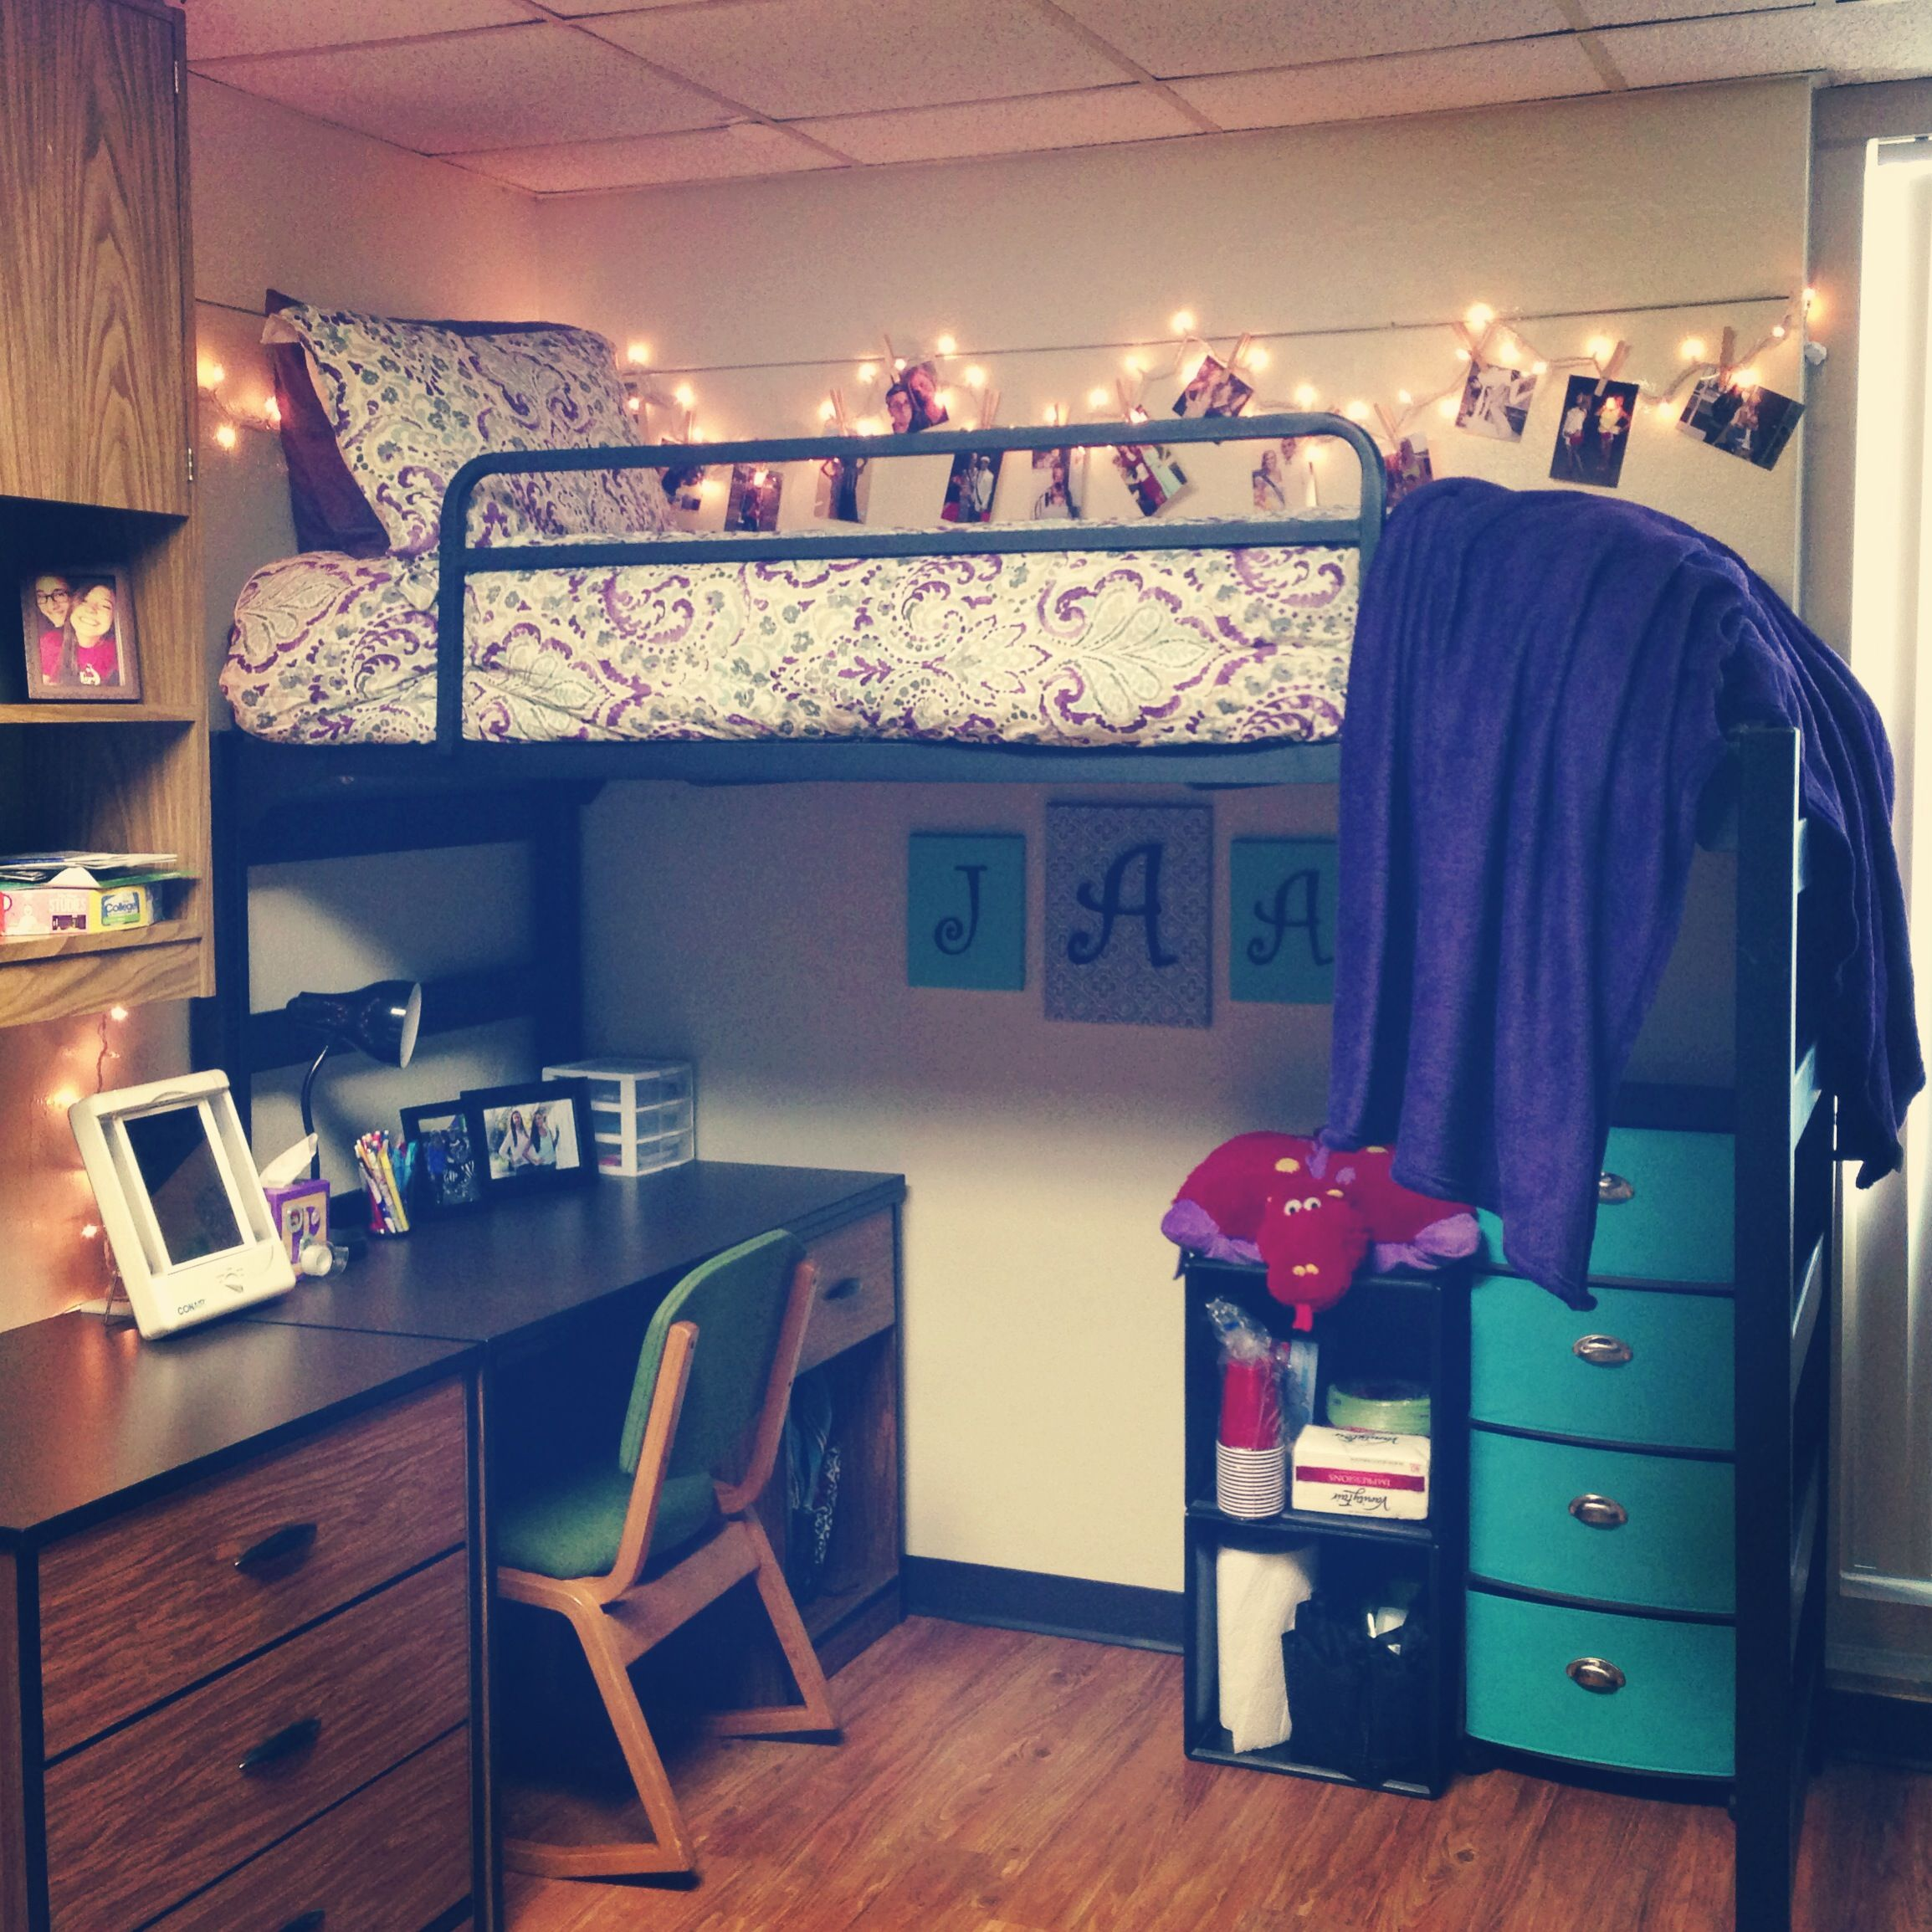 College loft bed ideas  Dorm Room Ideas and Must Have Essentials  Dorm Roommate and College